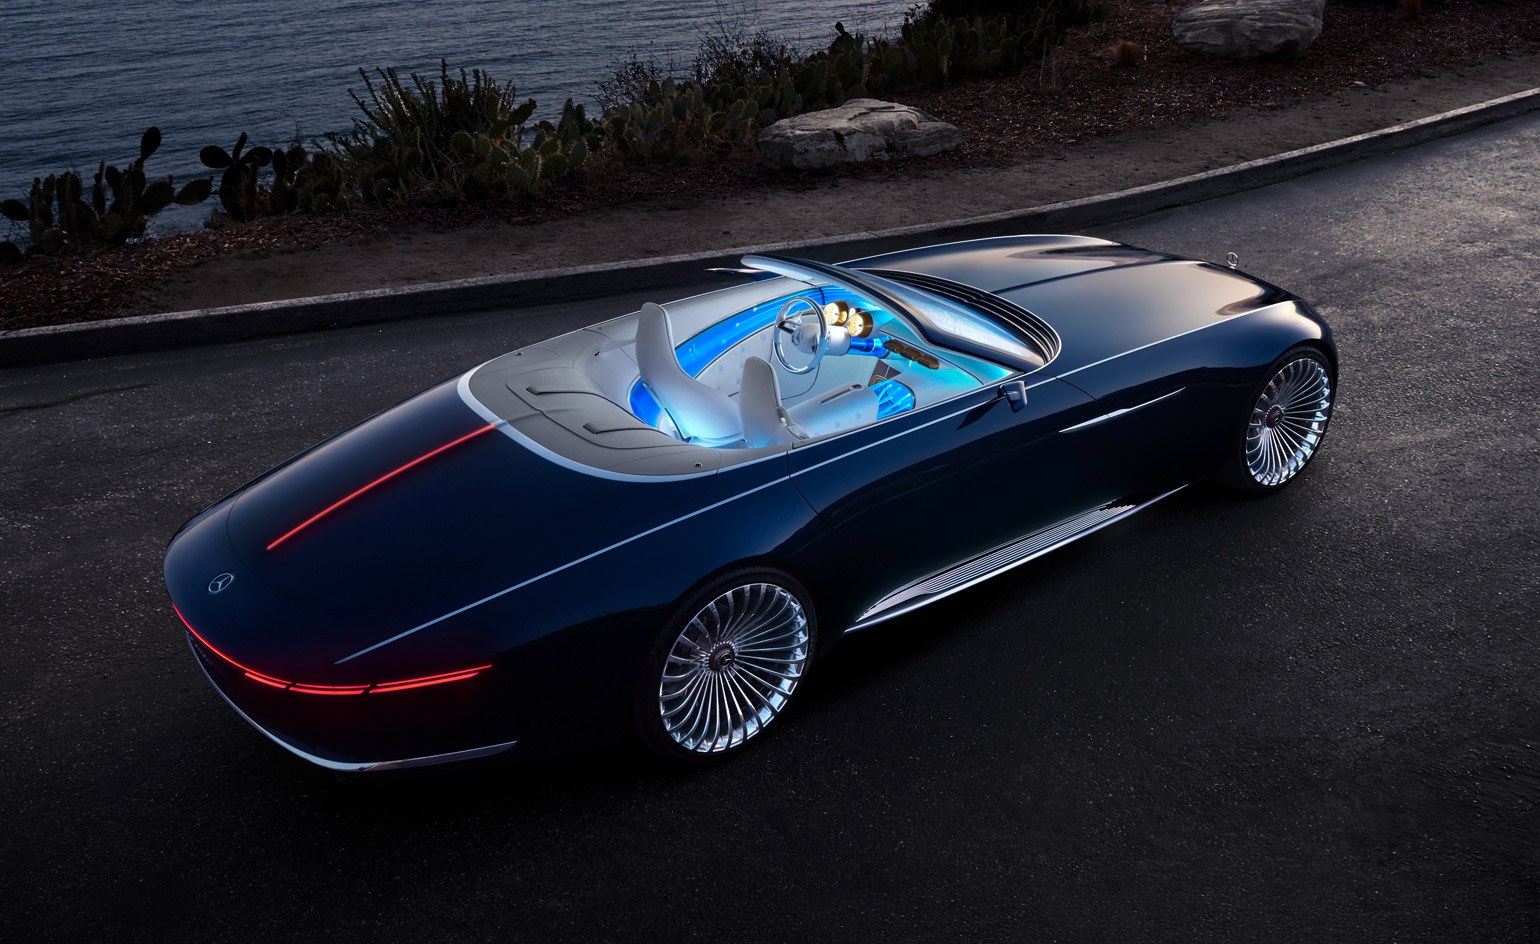 Luxury Vehicle: First Look: The Vision Mercedes-Maybach 6 Cabriolet